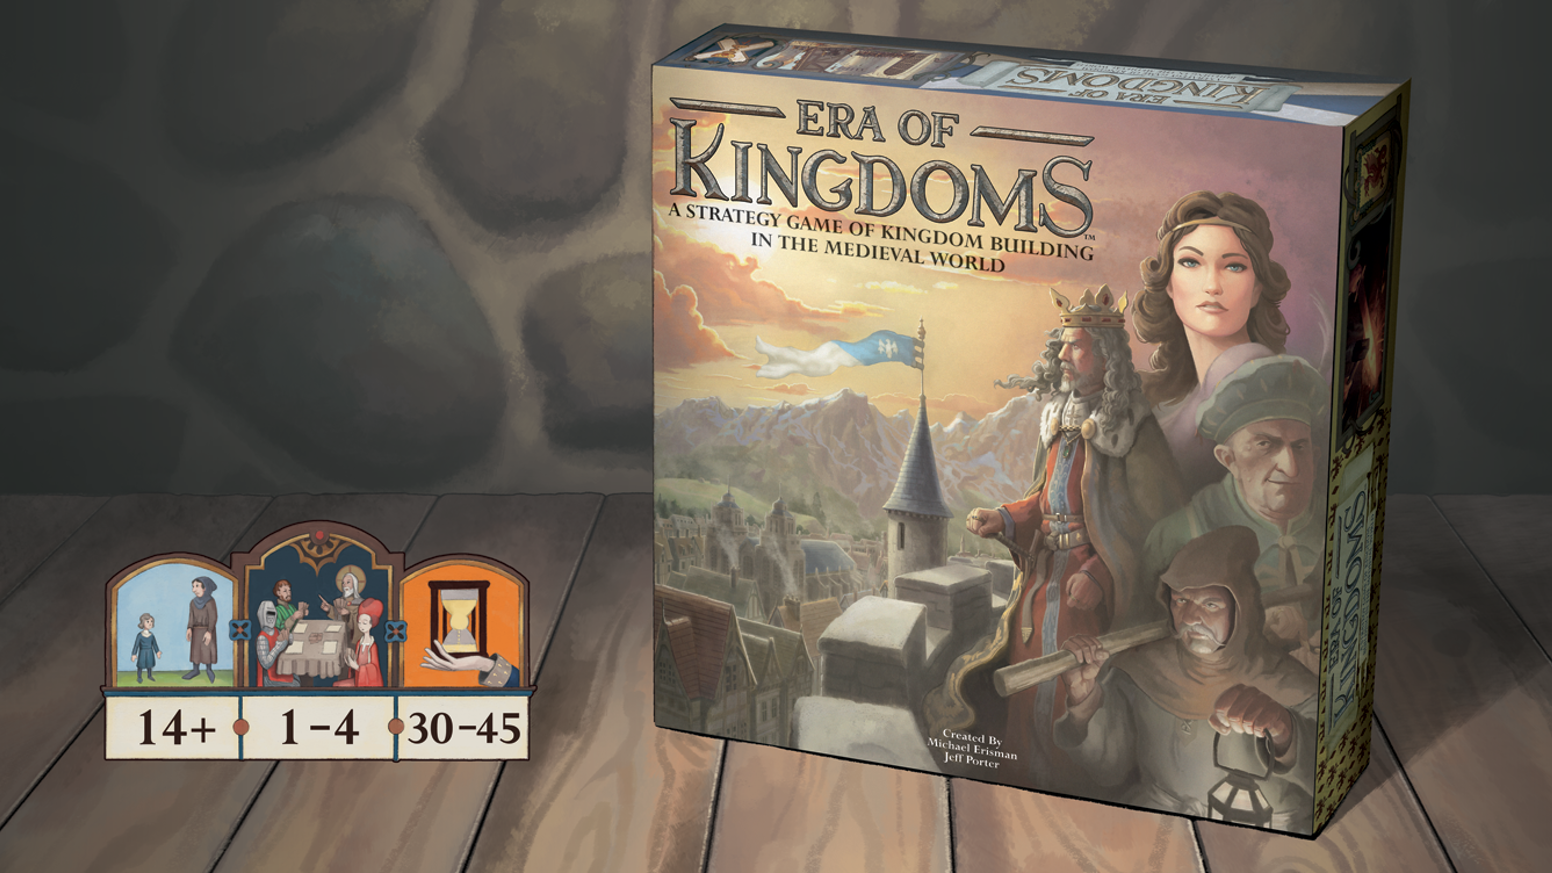 A kingdom building strategy game for 1-4 players. Take your kingdom from the middle ages into the enlightenment!